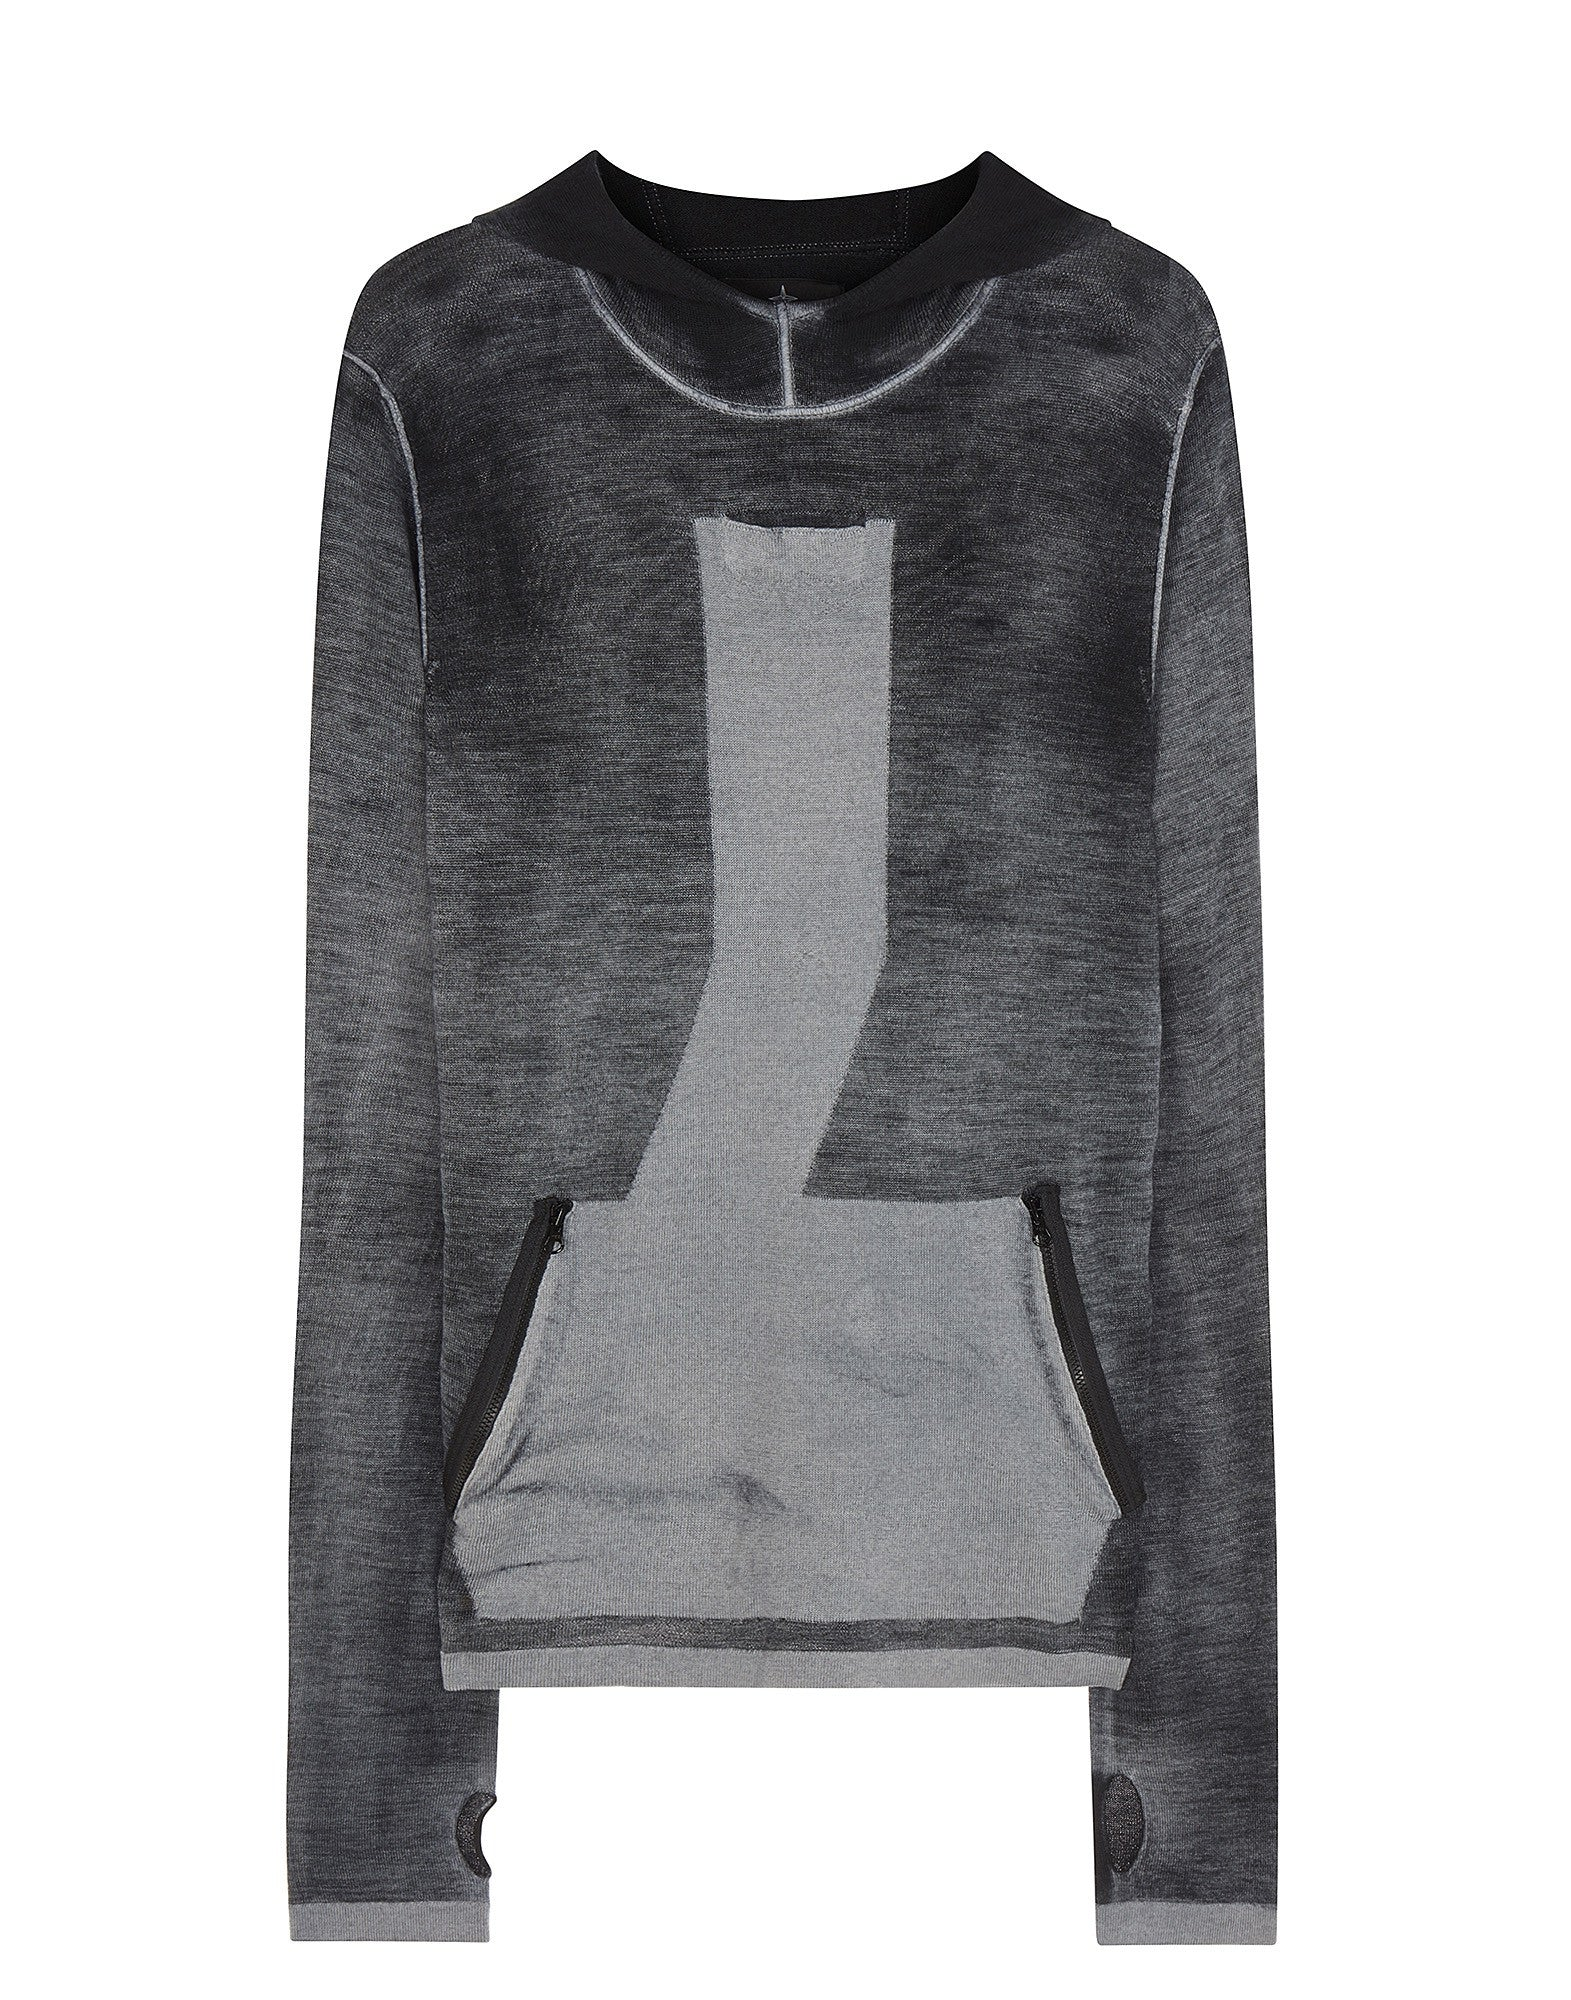 503A4 TELEPORT HOODIE _ JAQUARD PURE WOOL WITH INNER AIRBRUSH TREATMENT in Grey